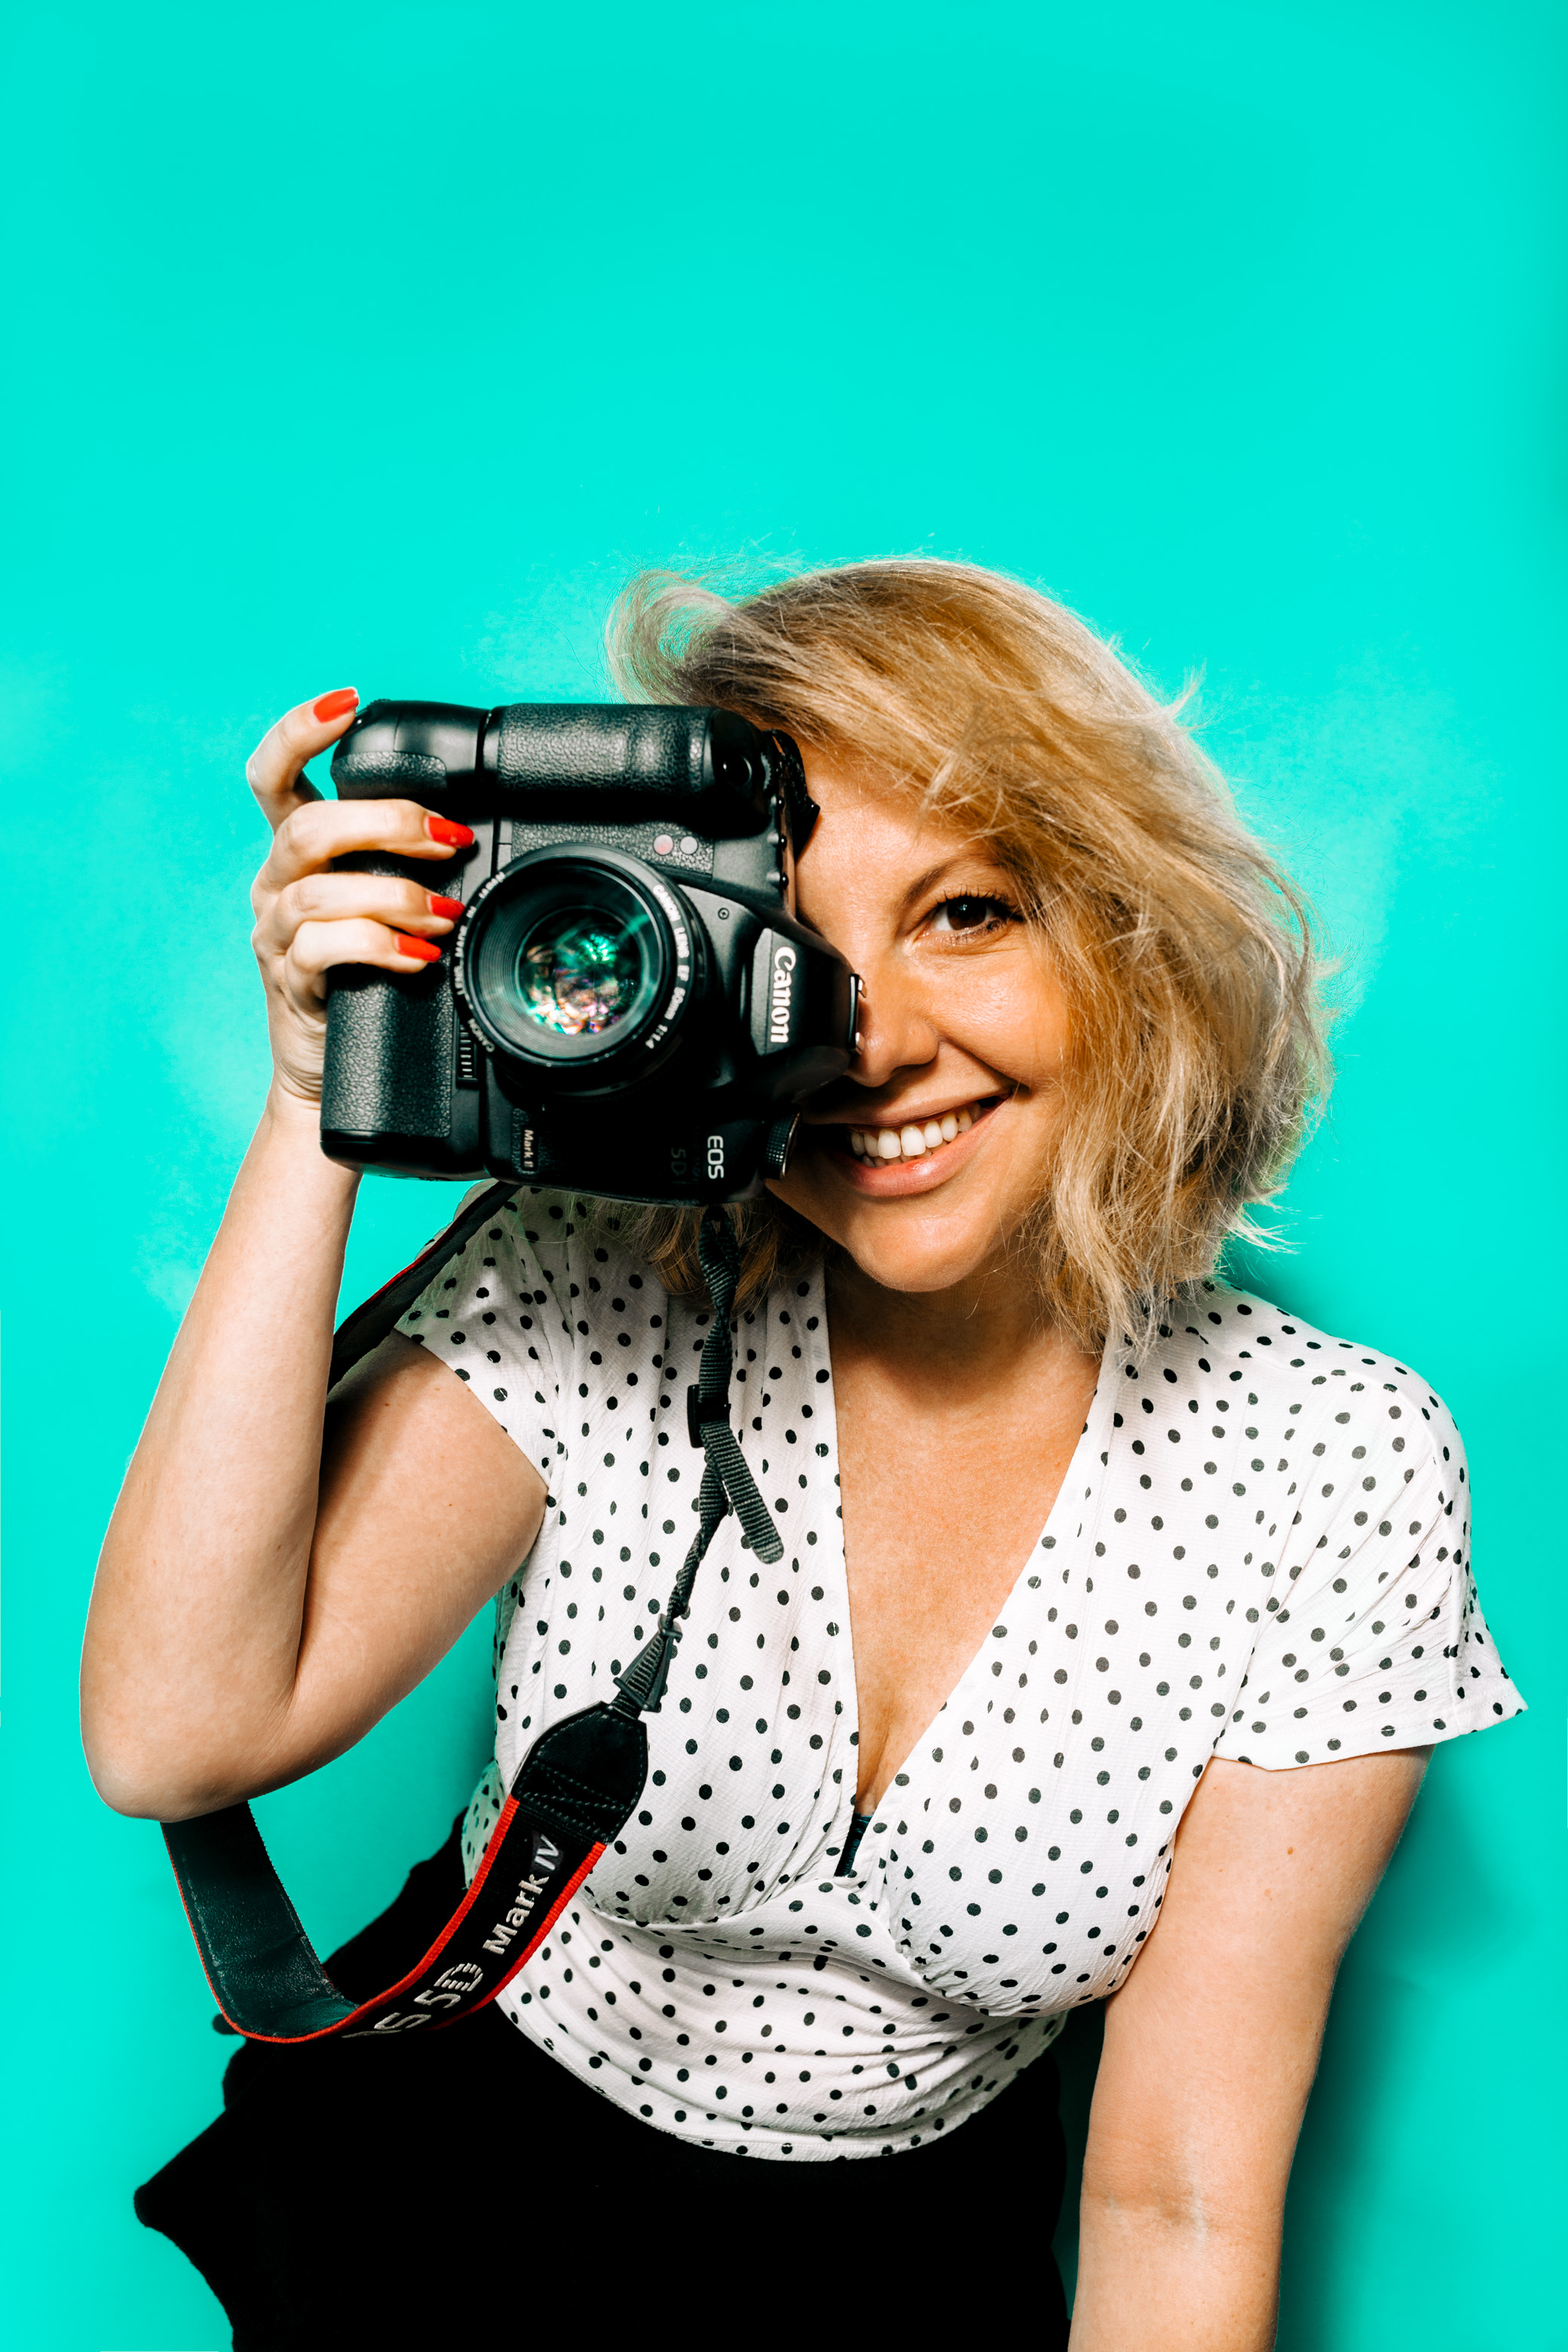 Misso, LLC is the home of me, Olga B., a NYC lifestyle & portrait photographer. Read more about me  here .